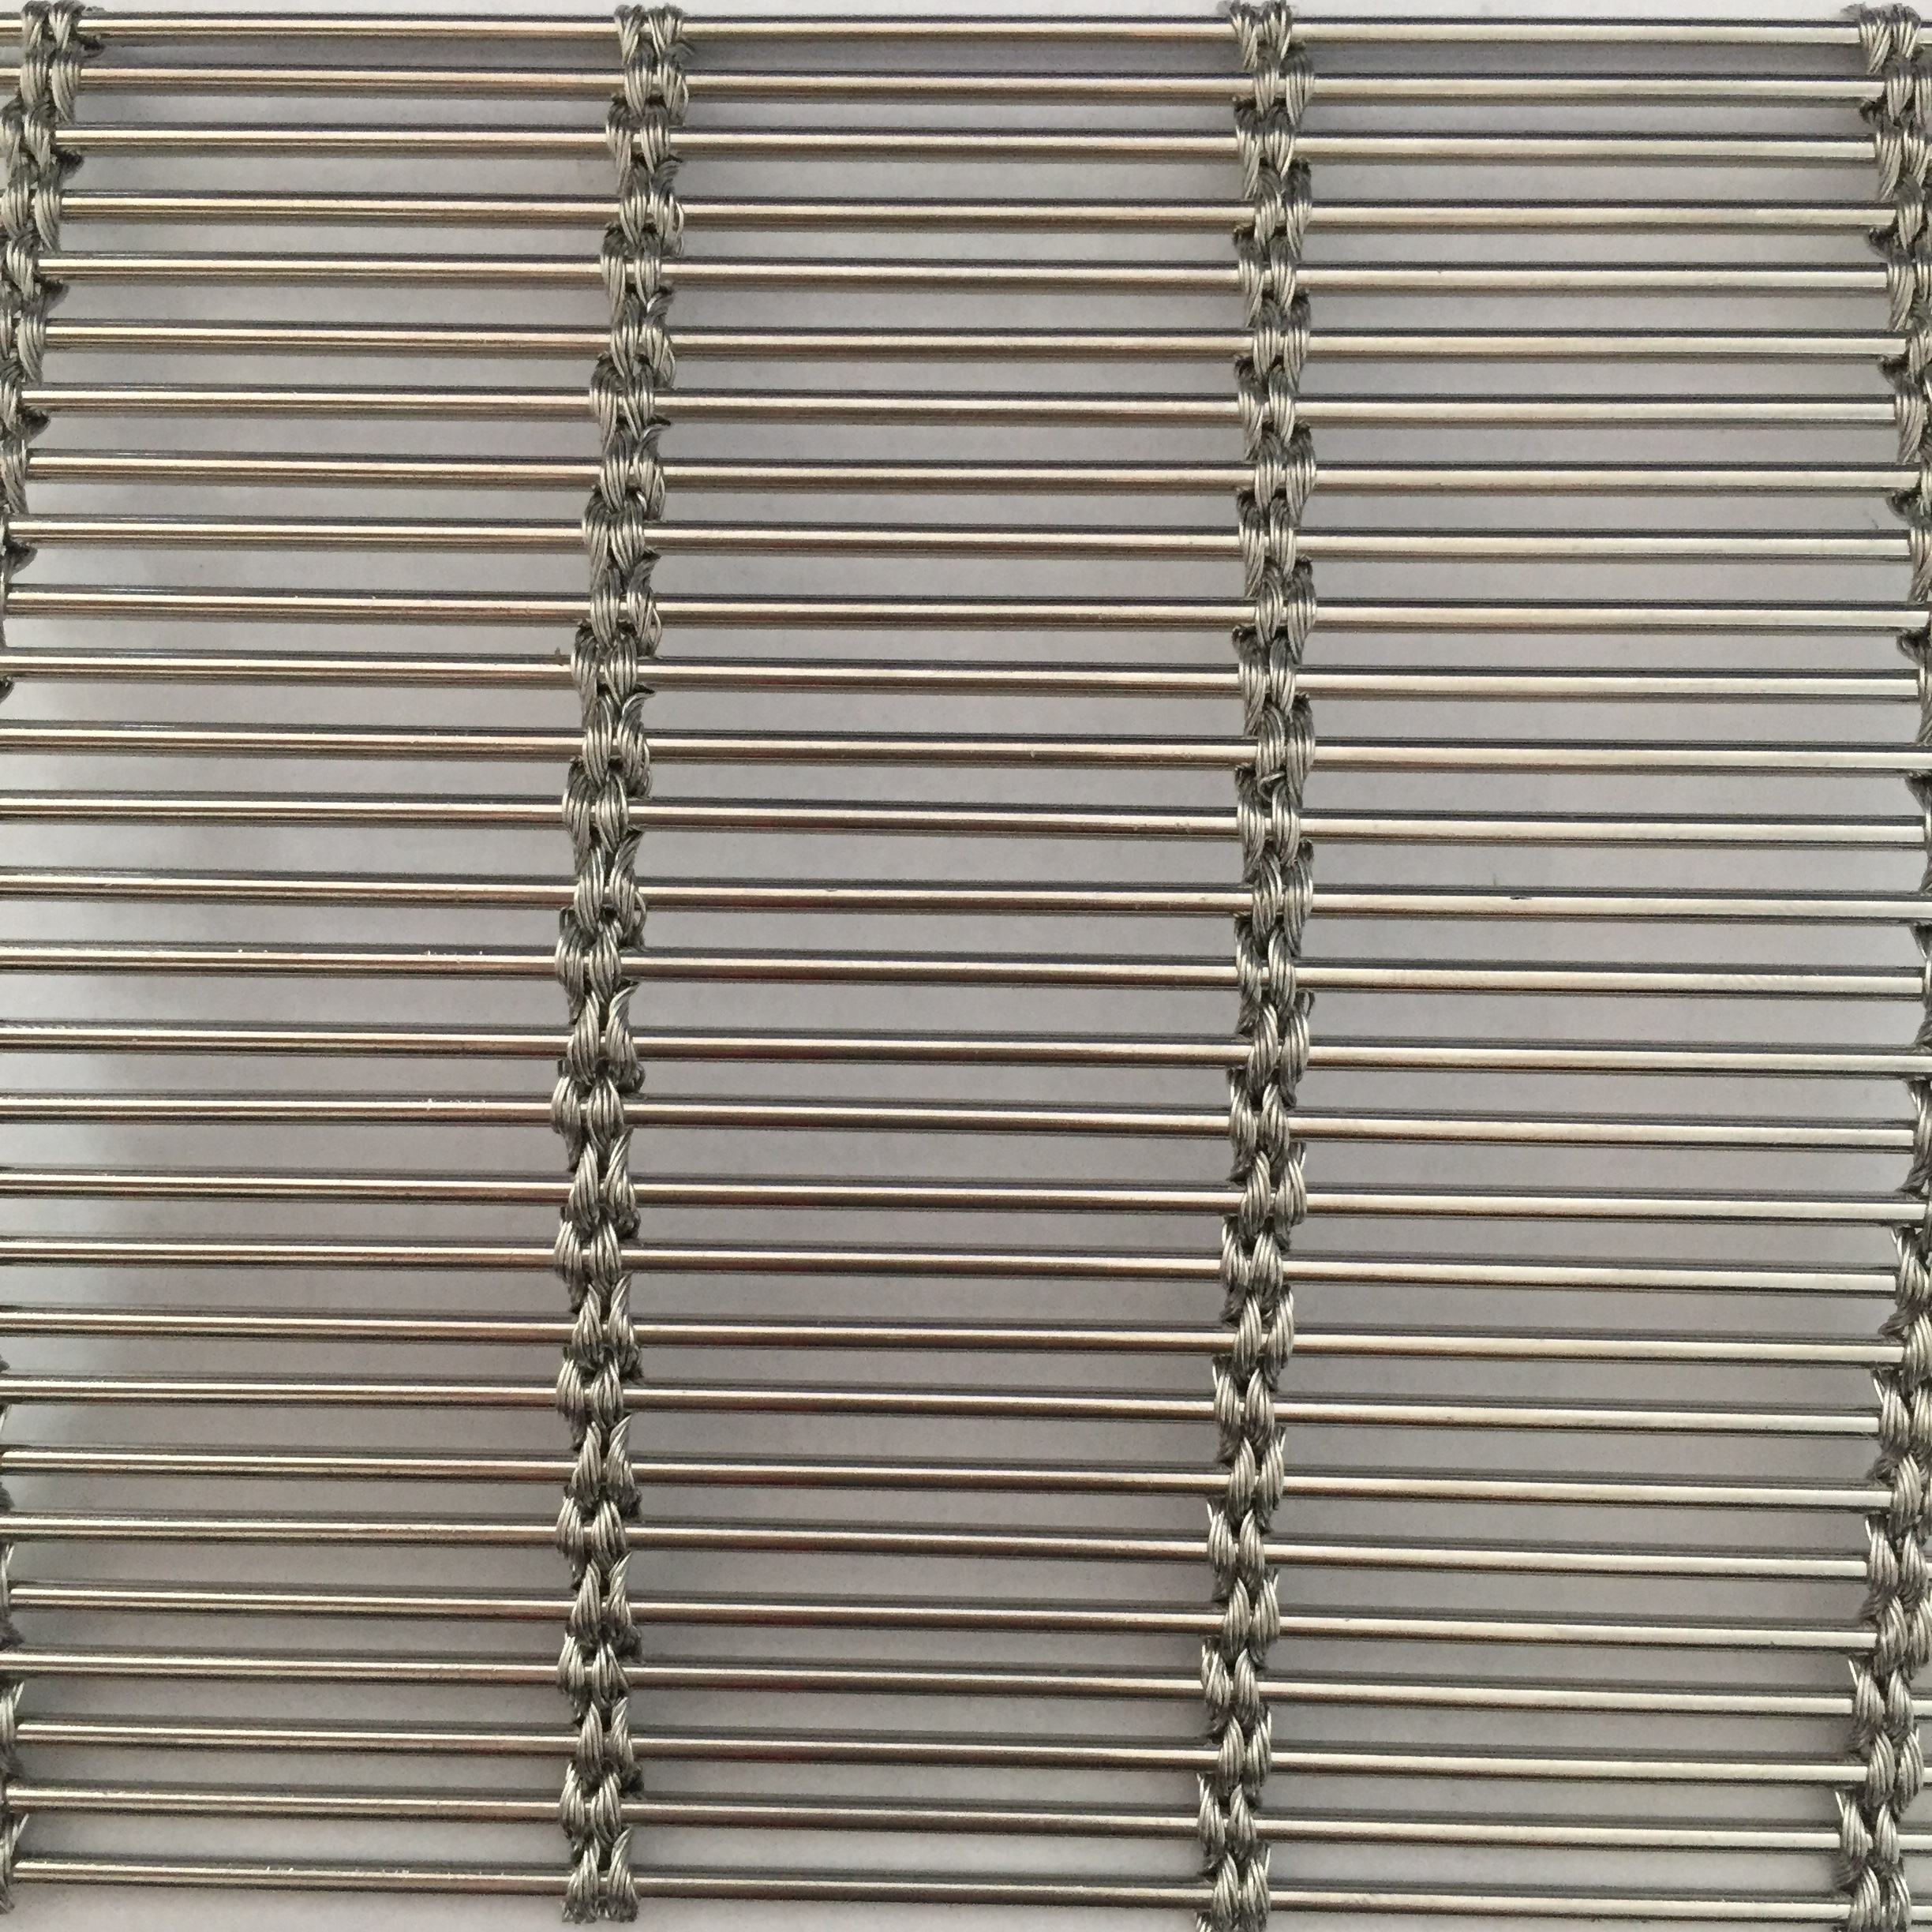 Stainless Steel Wire Solar Shading Architectural Mesh Metal Curtain For Partition Wall